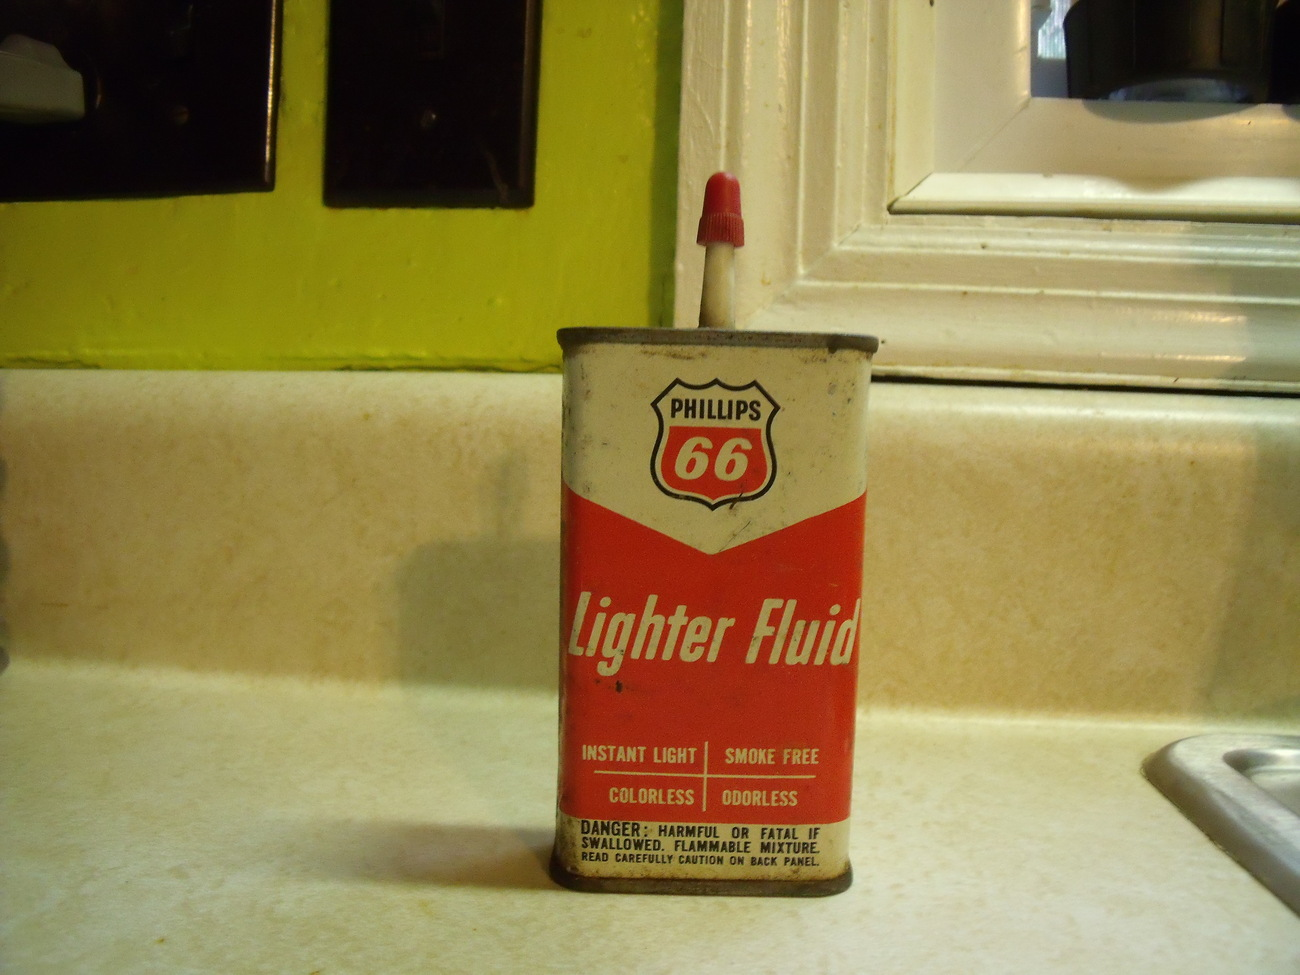 Phil 66 lighter fluid